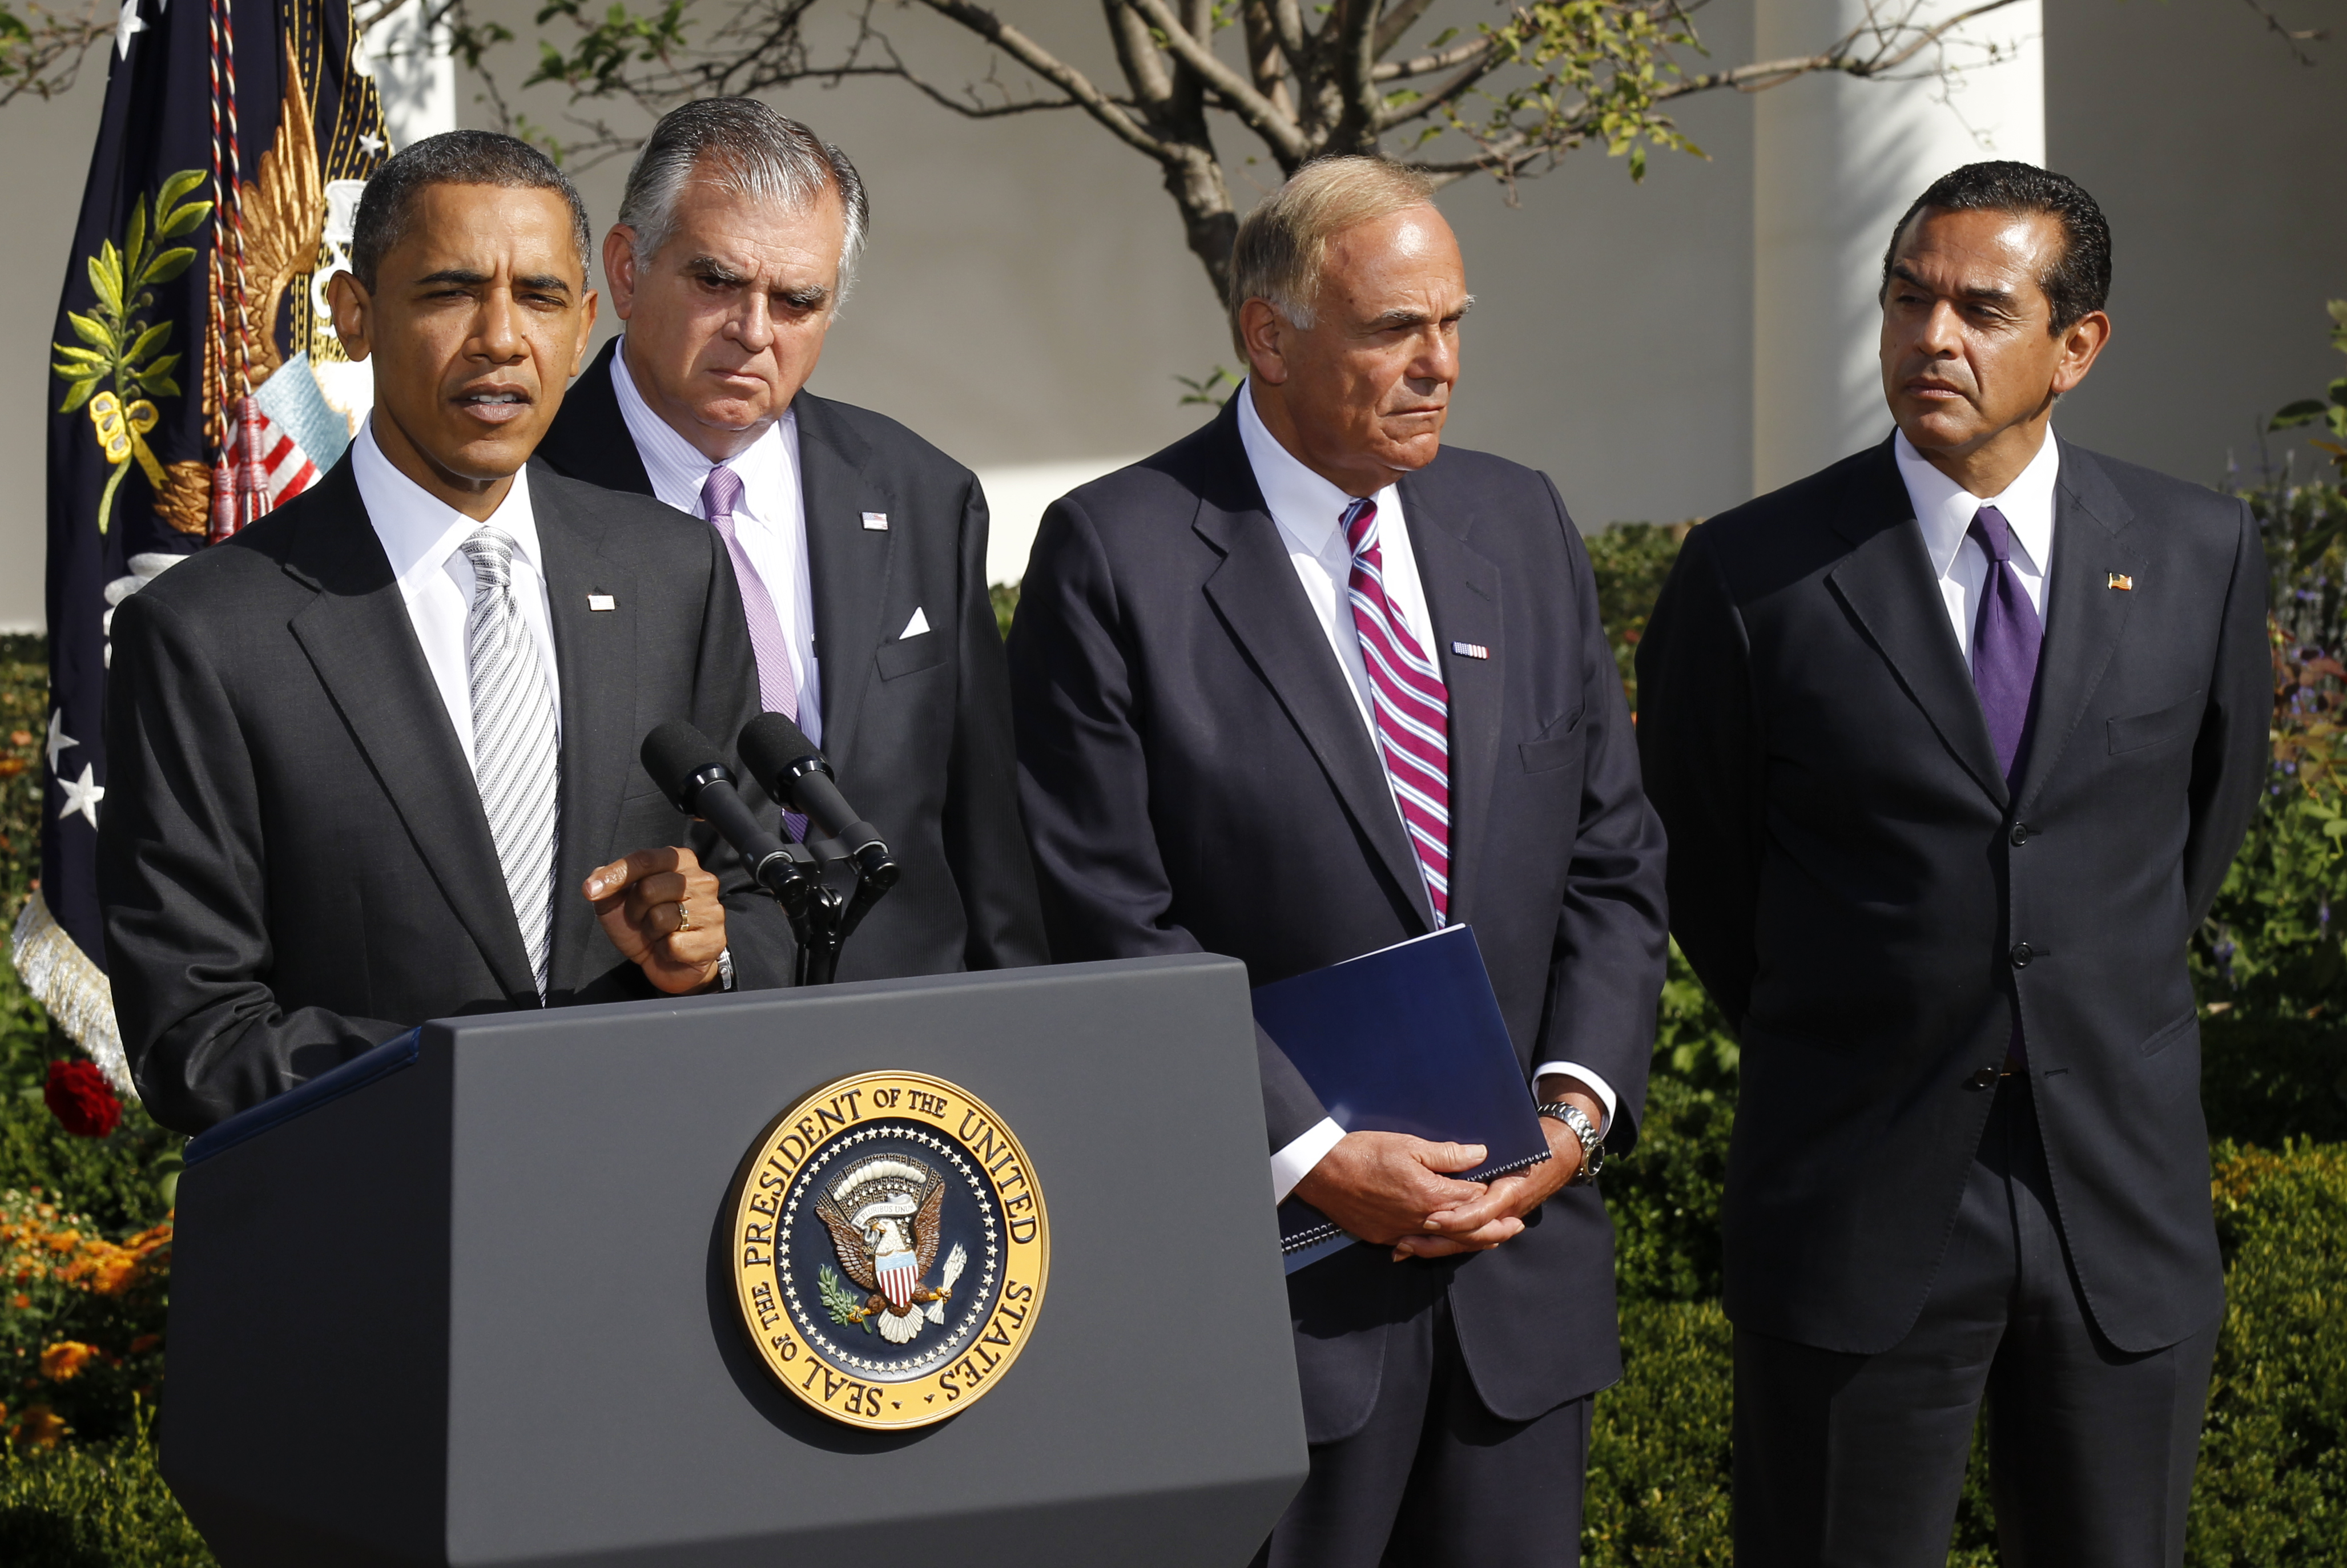 <div class='meta'><div class='origin-logo' data-origin='AP'></div><span class='caption-text' data-credit='ASSOCIATED PRESS'>Rendell joins President Barack Obama in the Rose Garden in 2010. (AP Photo/Pablo Martinez Monsivais)</span></div>